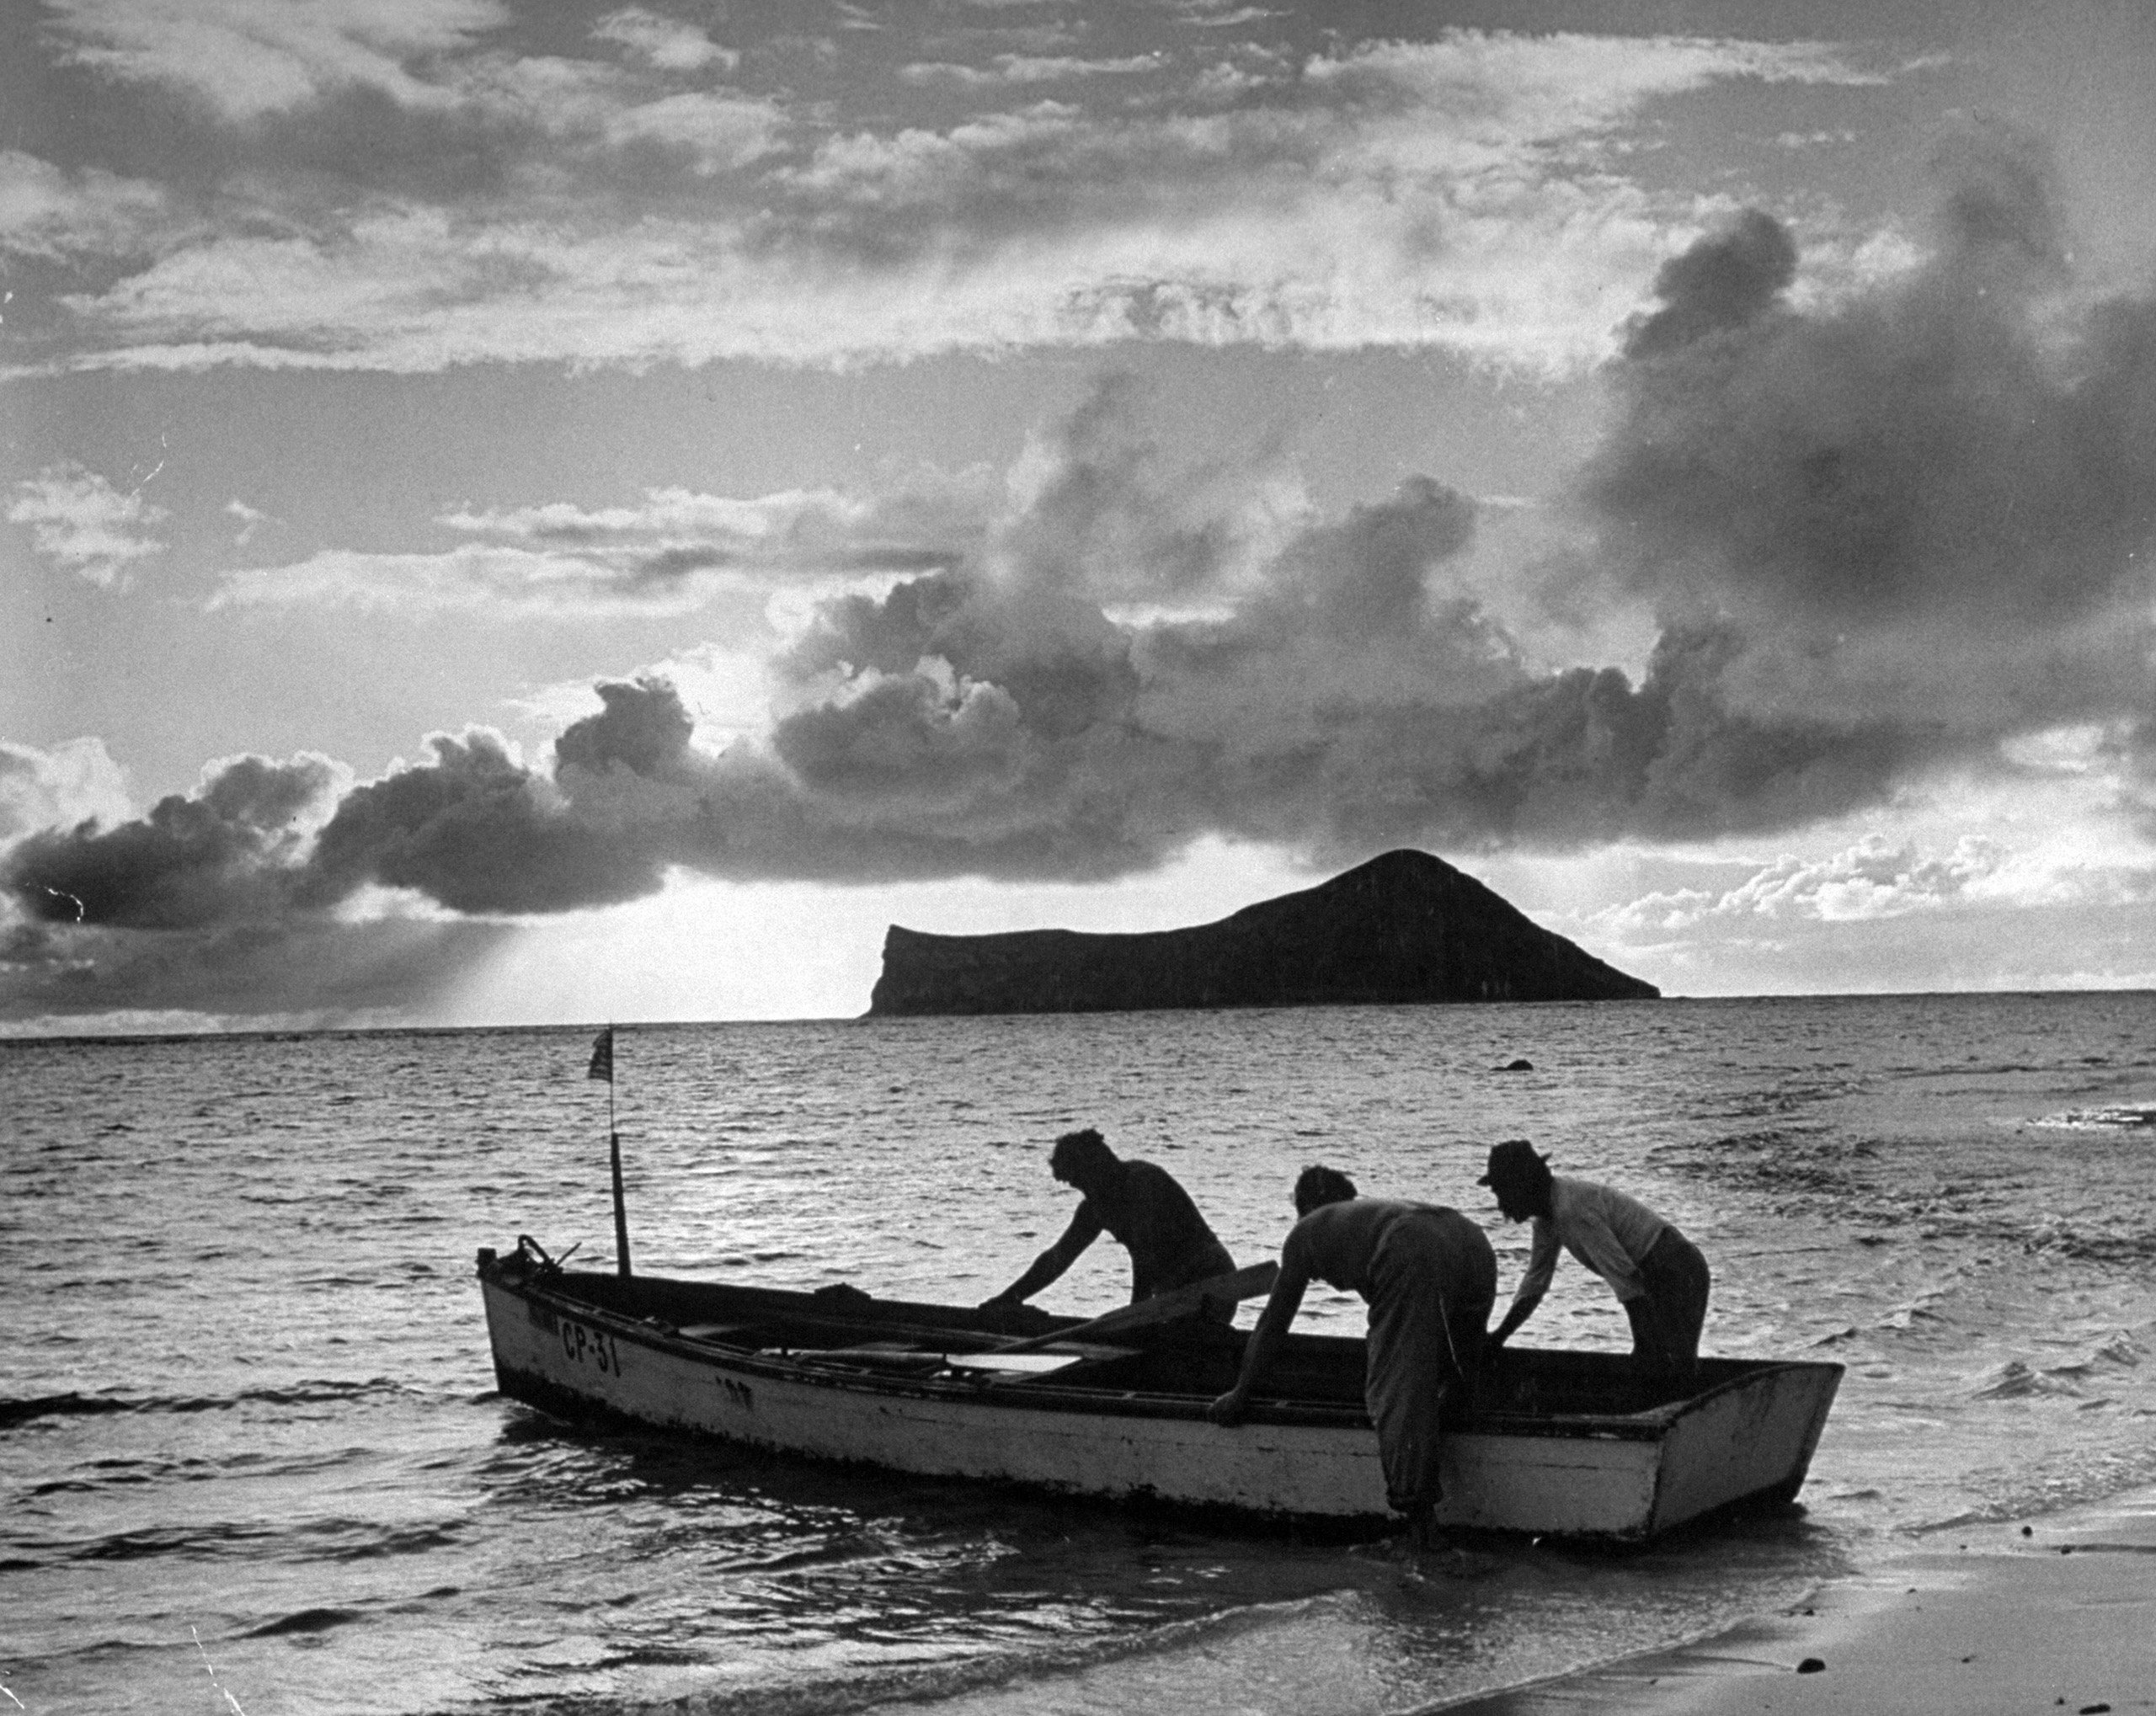 <b>Caption from LIFE.</b> At dawn Hawaiians put out to sea to pull in their fish nets. By law, their boat flies the American flag at bow.